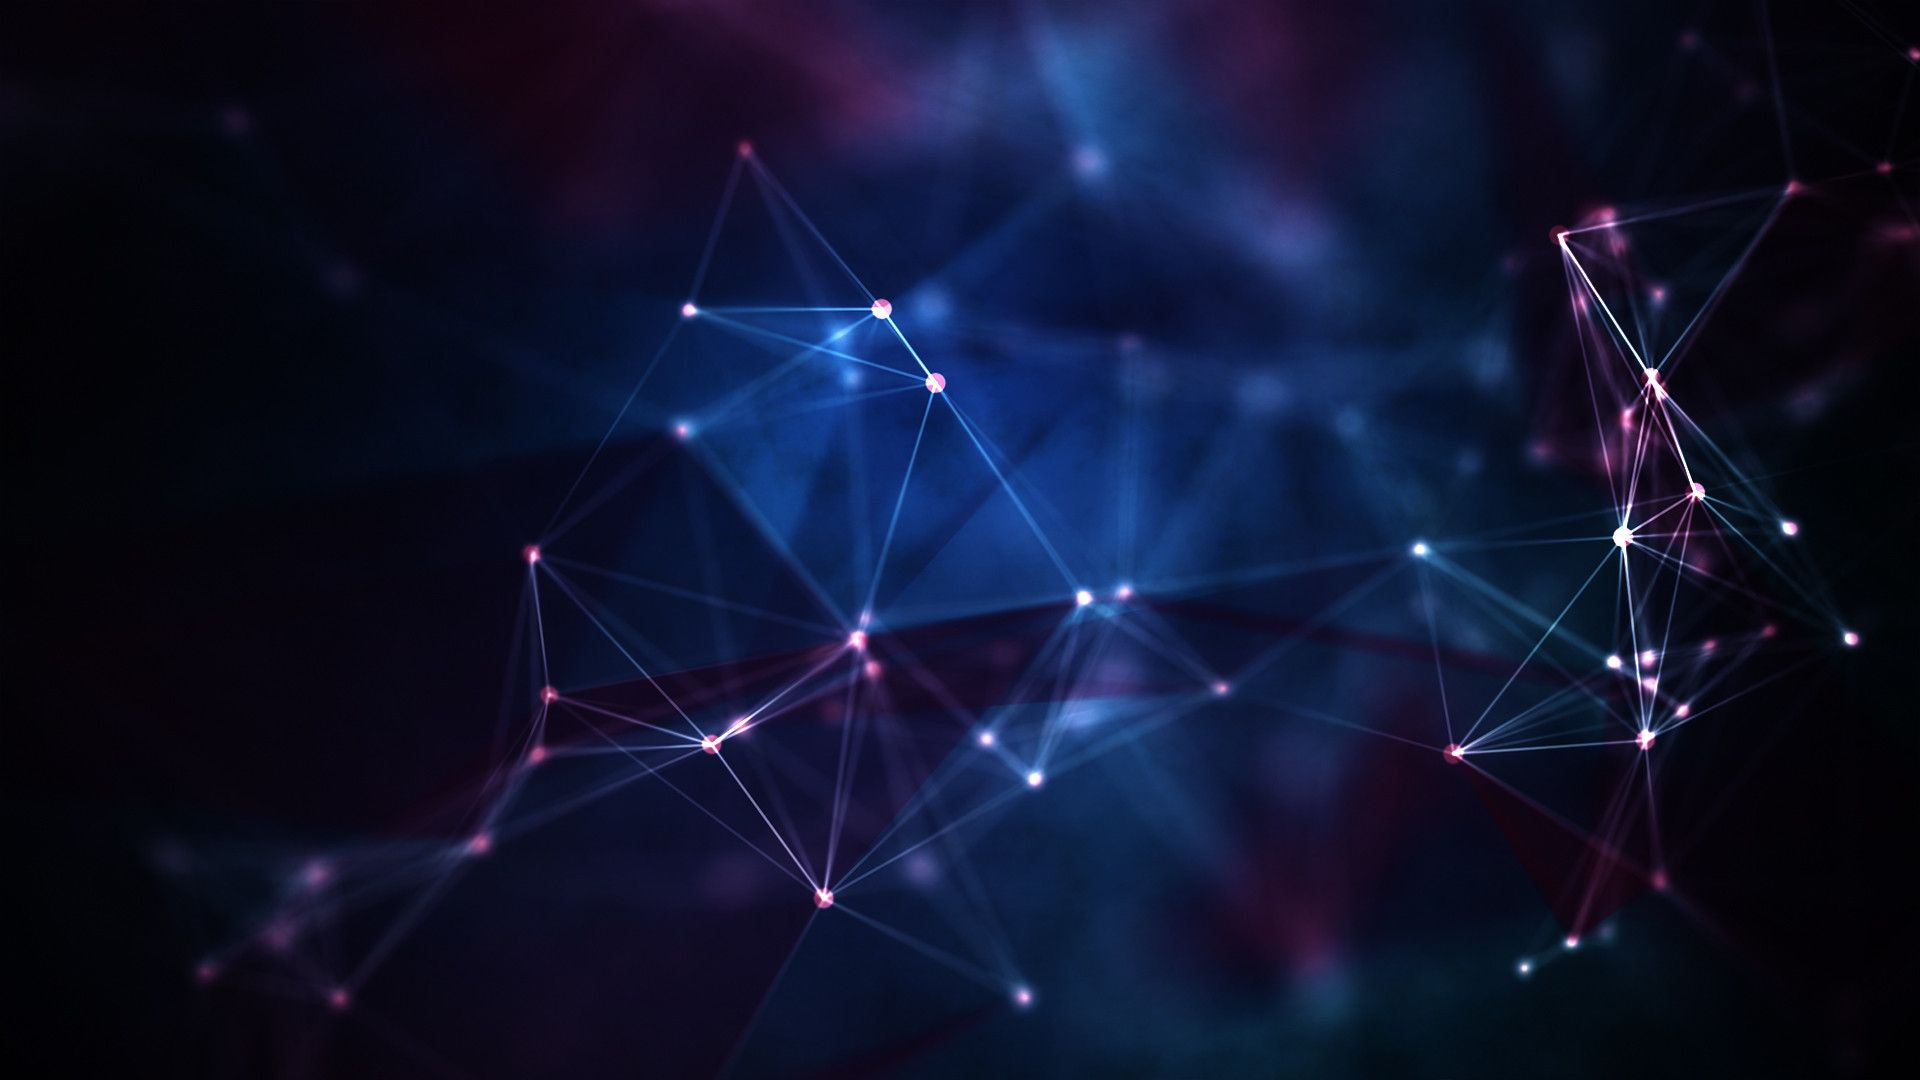 plexus after effects - Google Search | Wallpaper | Abstract backgrounds, Sci fi wallpaper y ...